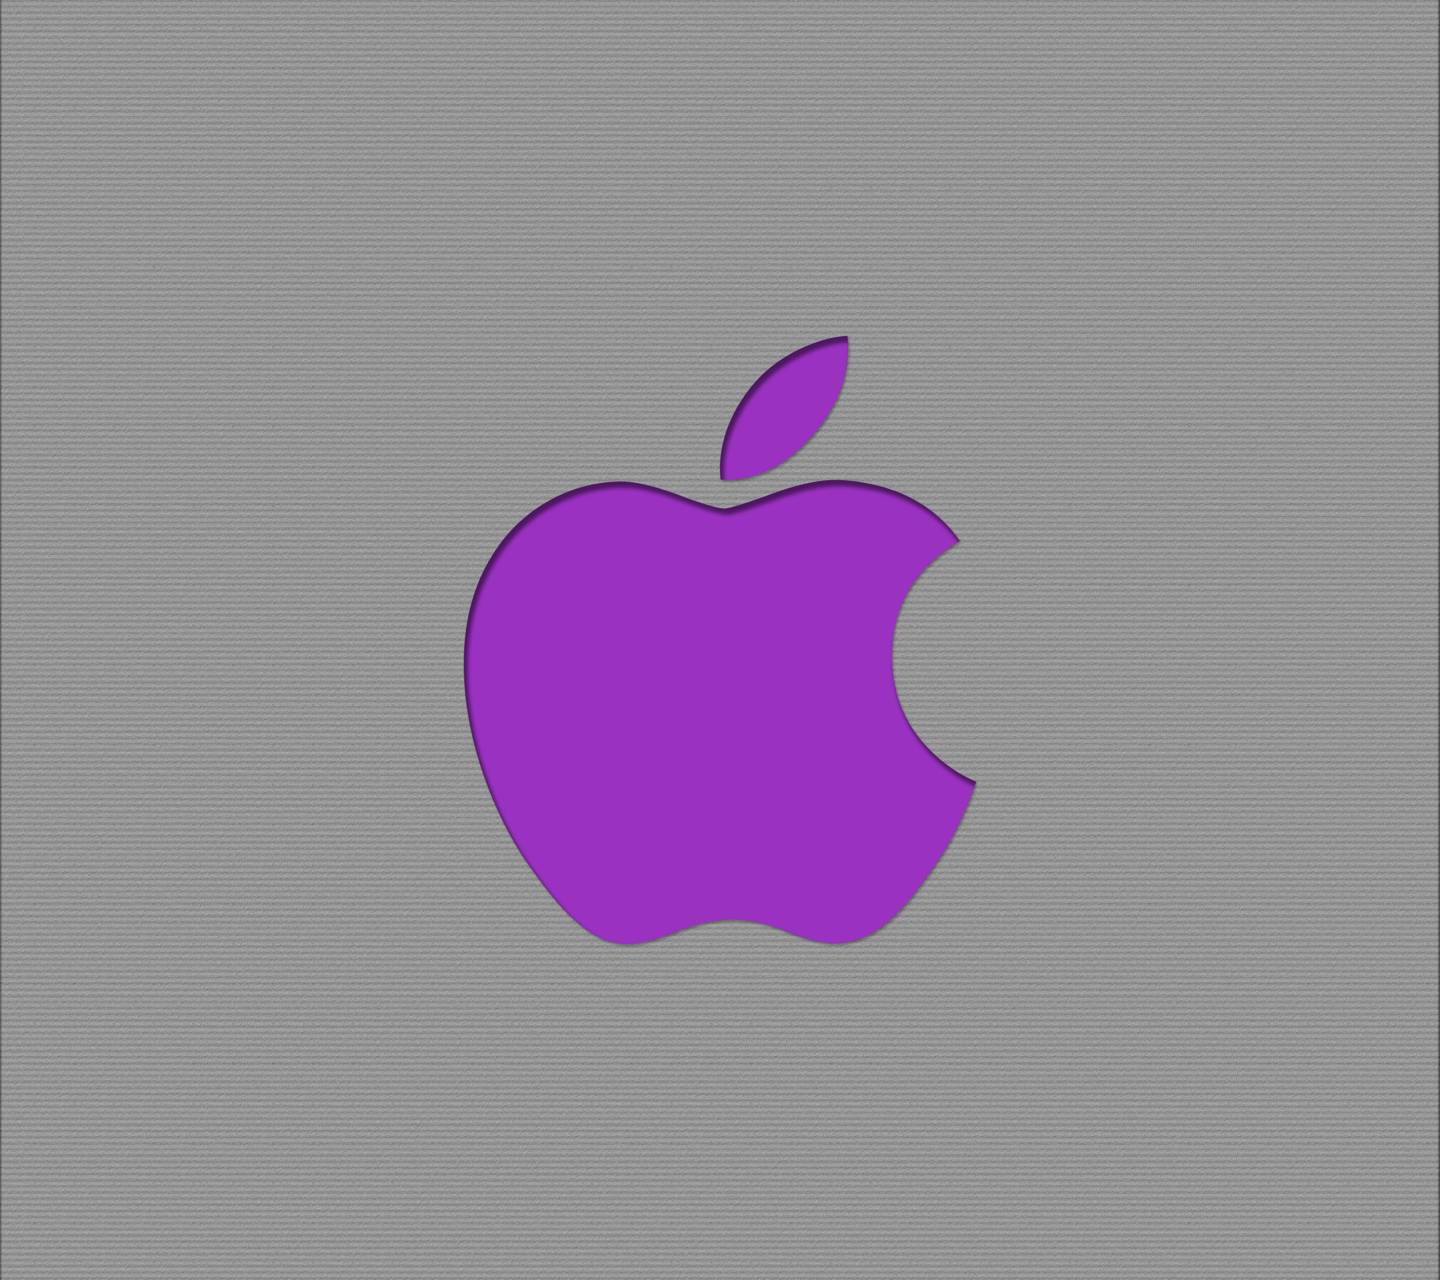 purple apple logo